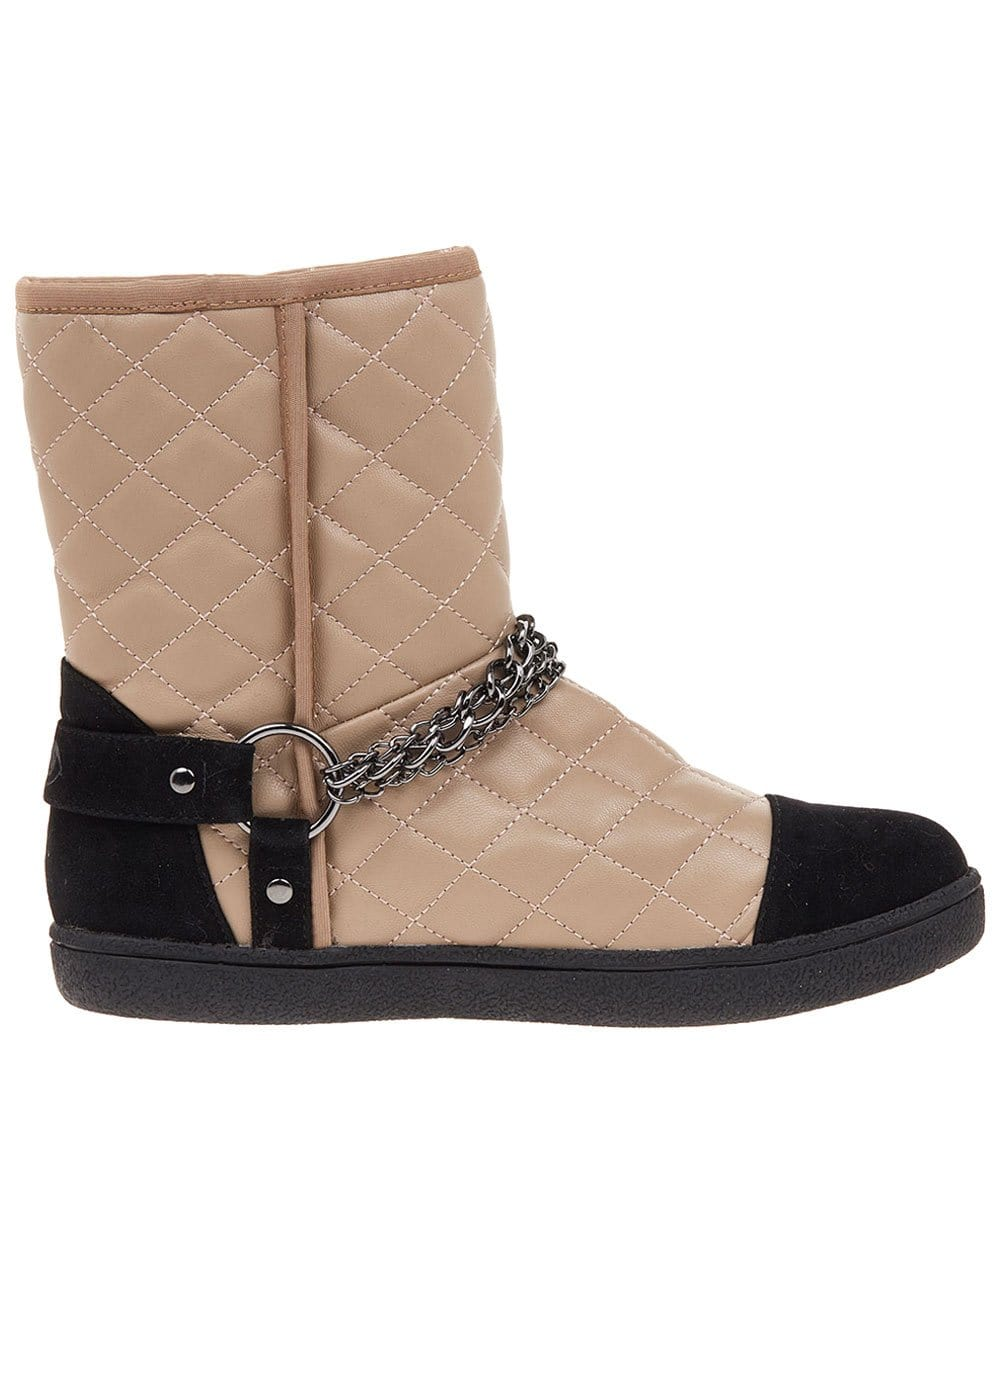 Winter Biker Boots With Faux Fur Lining - Taupe - Side